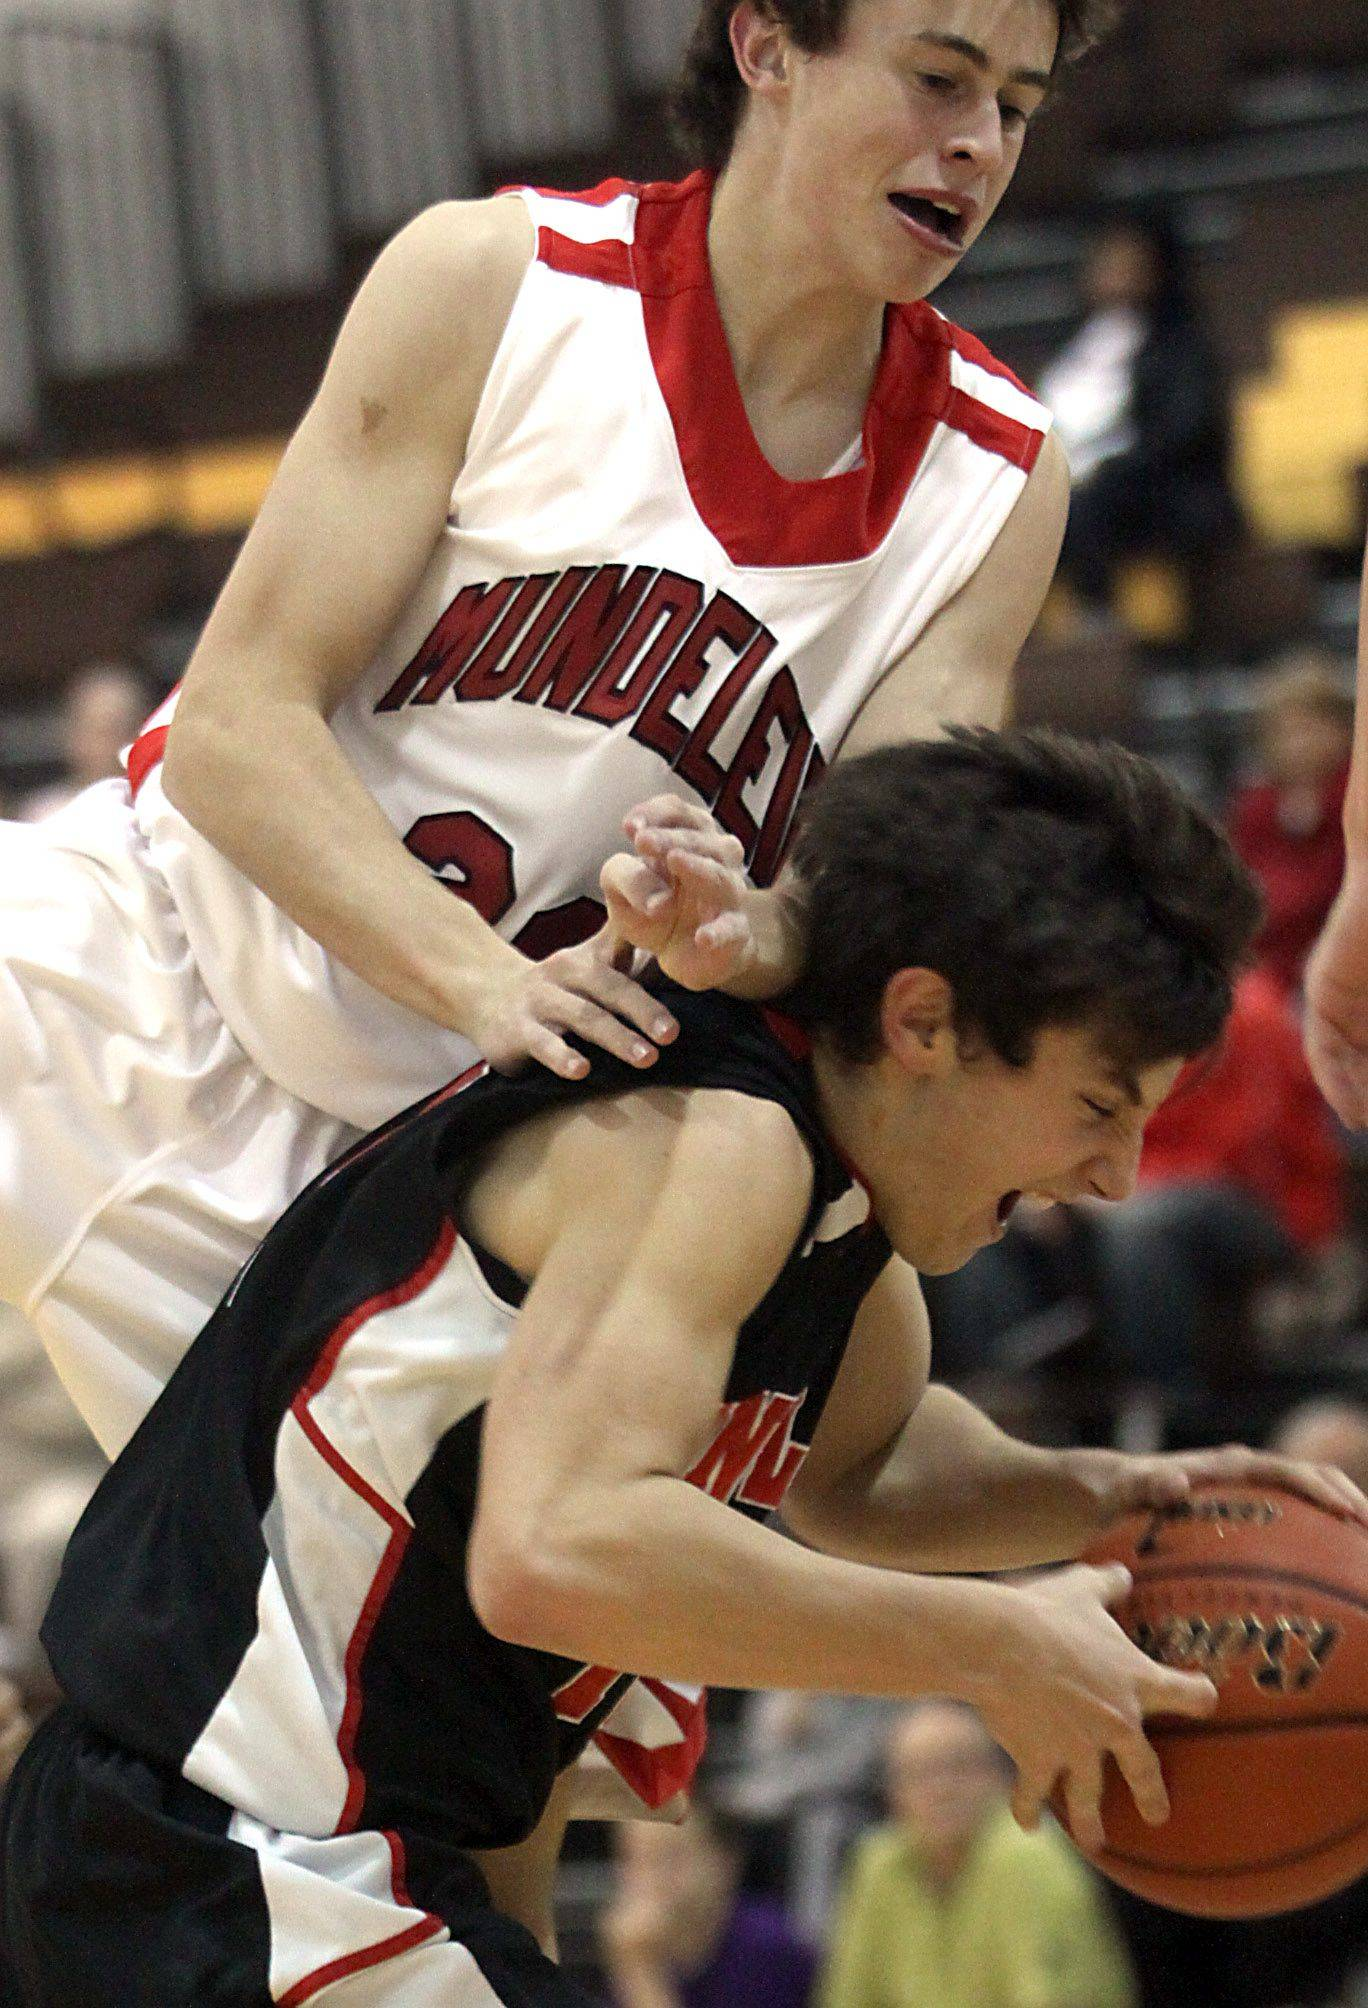 Patrick Kunzer/pkunzer@dailyherald.comJake Dachman of Huntley, bottom, tries to keep a handle on the basketball as Nate Brune of Mundelein plays defense during the title game of the Jacobs Holiday Classic Boys Basketball Tournament in Algonquin on Thursday night.